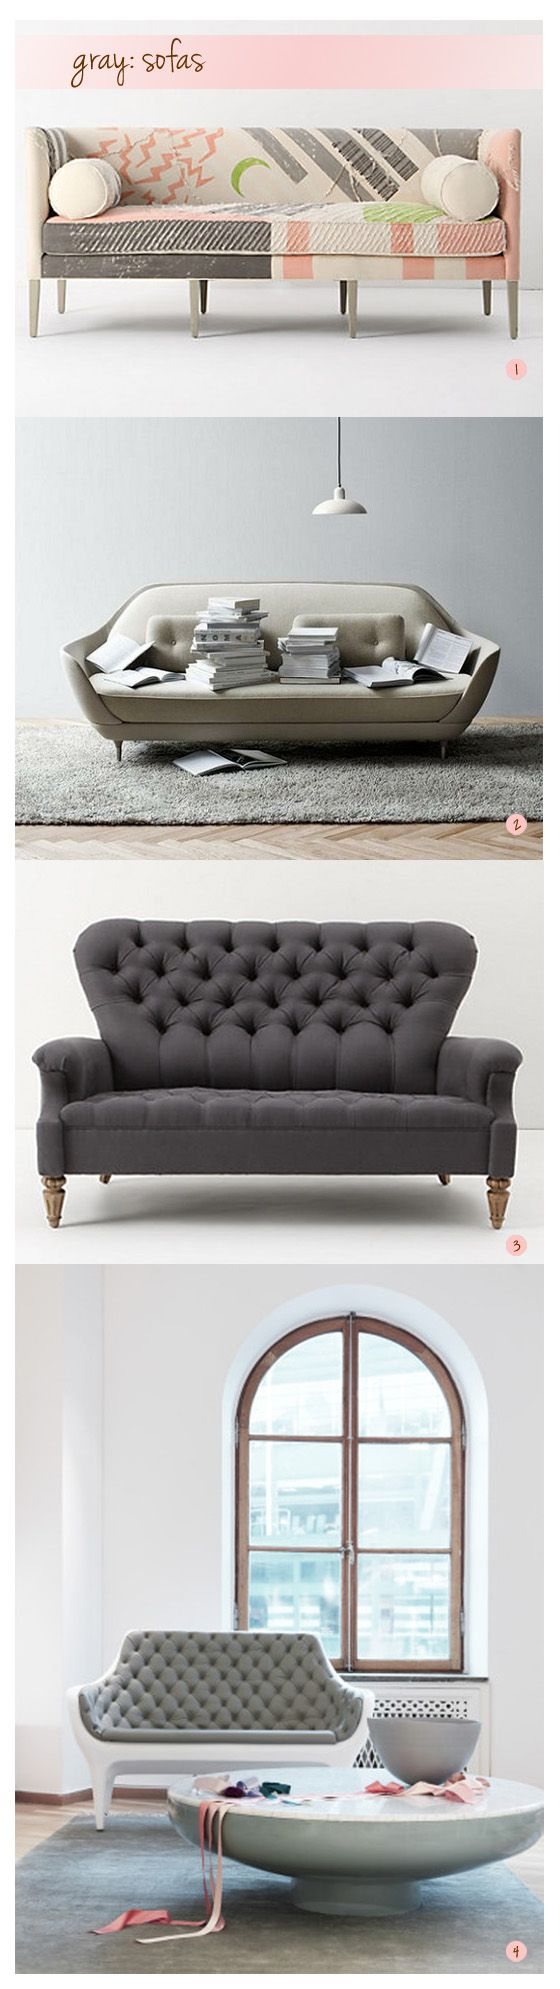 35 sensational sofau0027s you might love as much as your spouse grey tufted